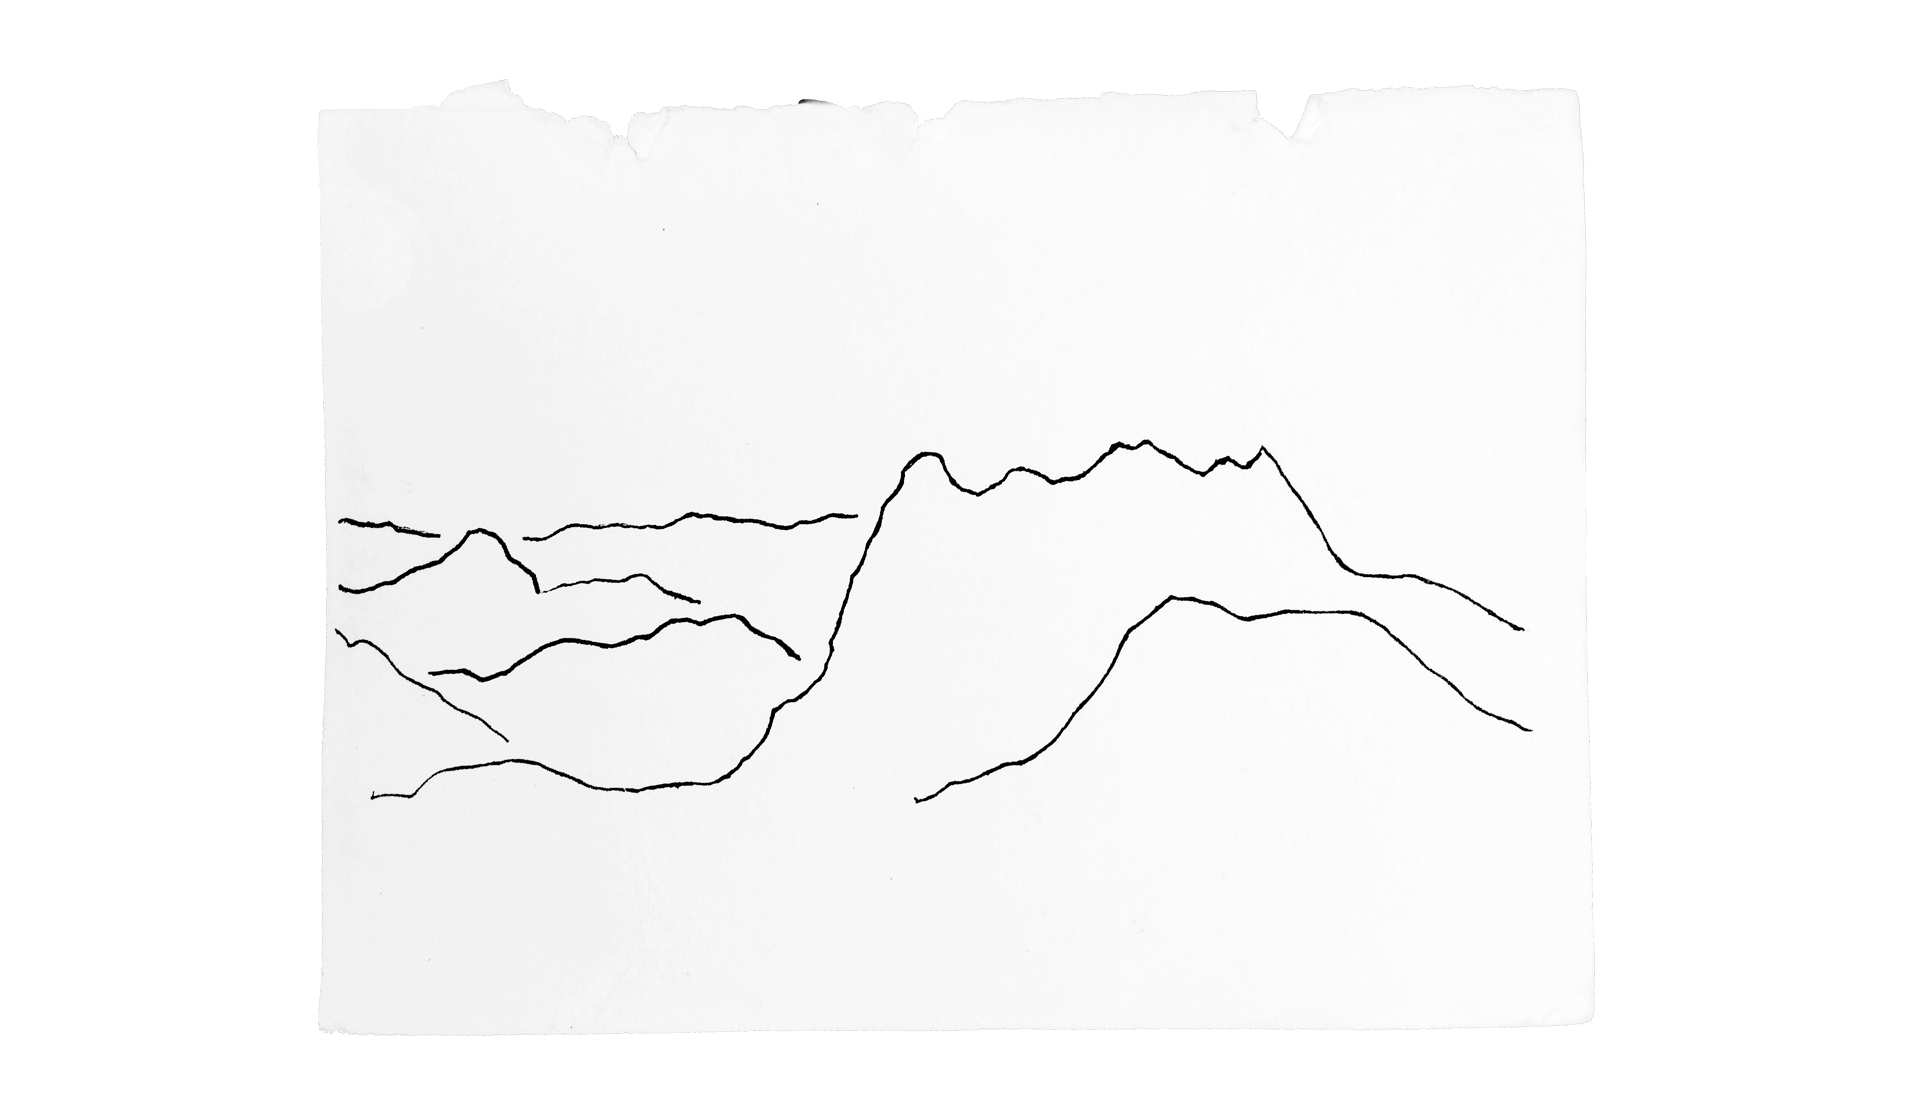 moutains_lines_4